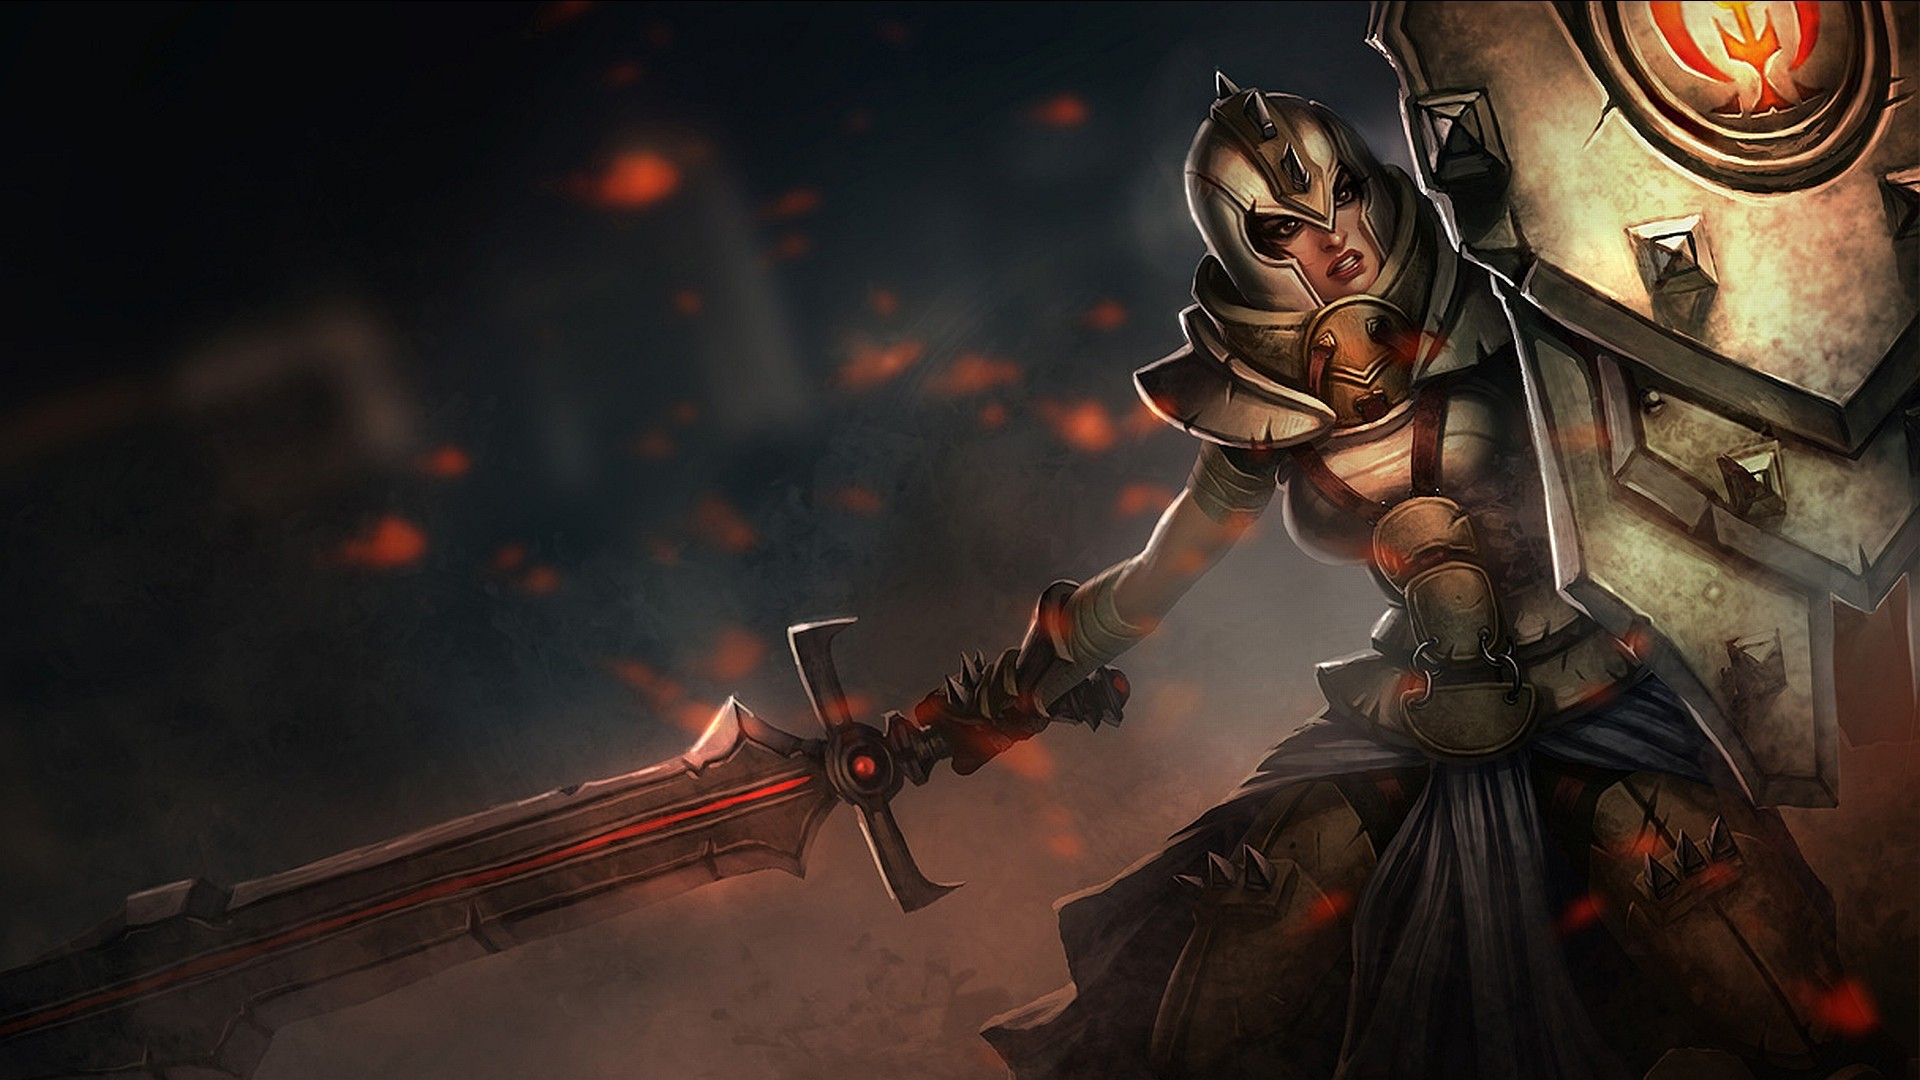 Girl crusader art for the game League of Legends